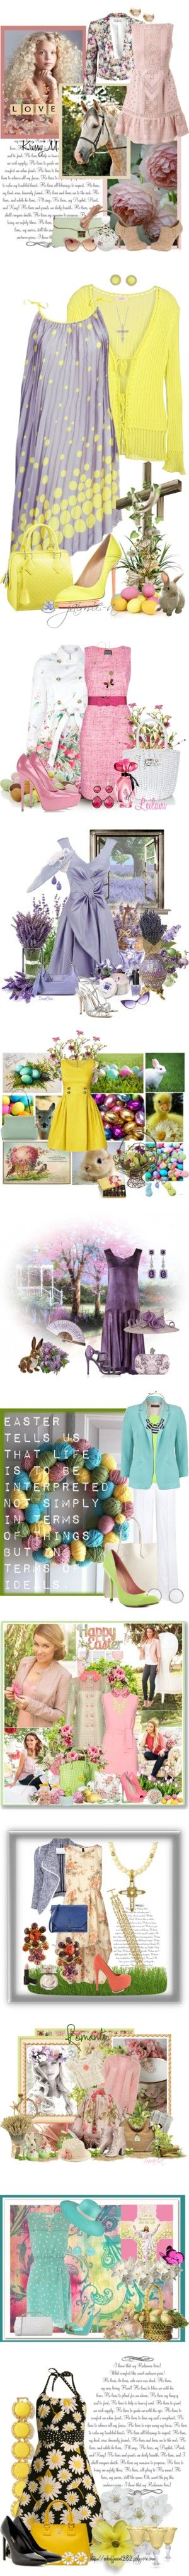 """""""Easter Fashion Sets"""" by lindaweldon ❤ liked on Polyvore"""